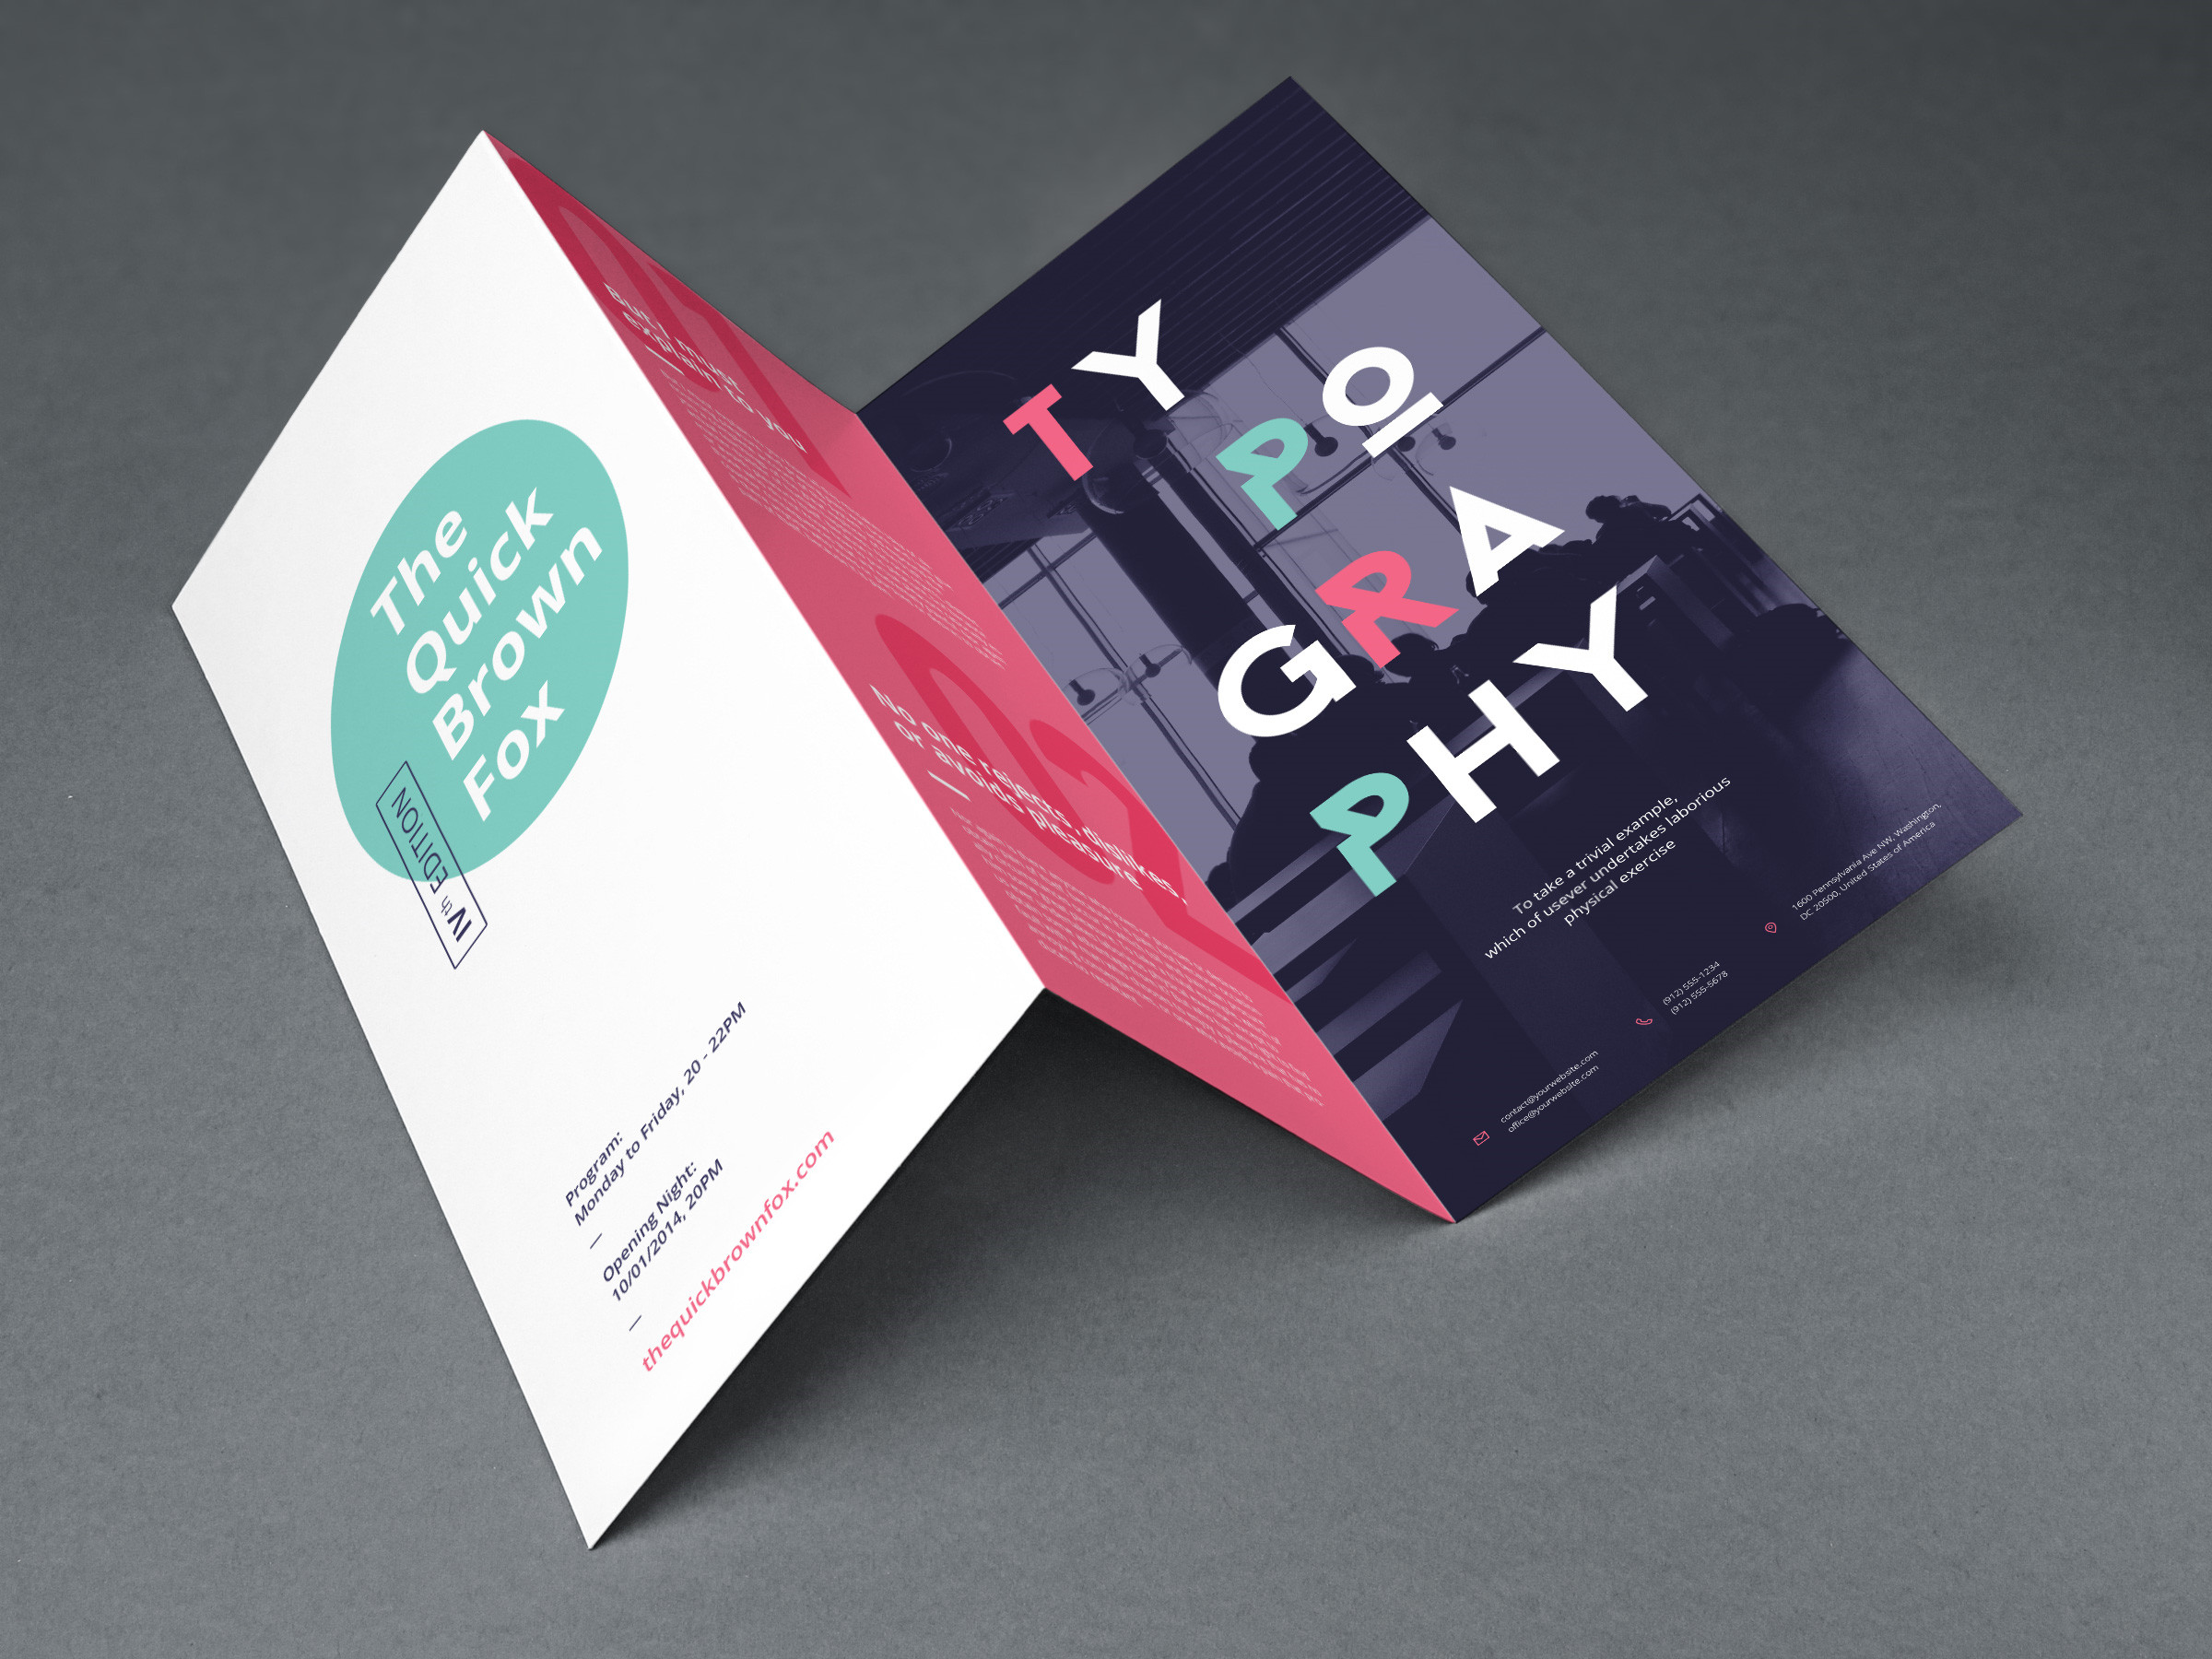 A partially unfolded Typography brochure